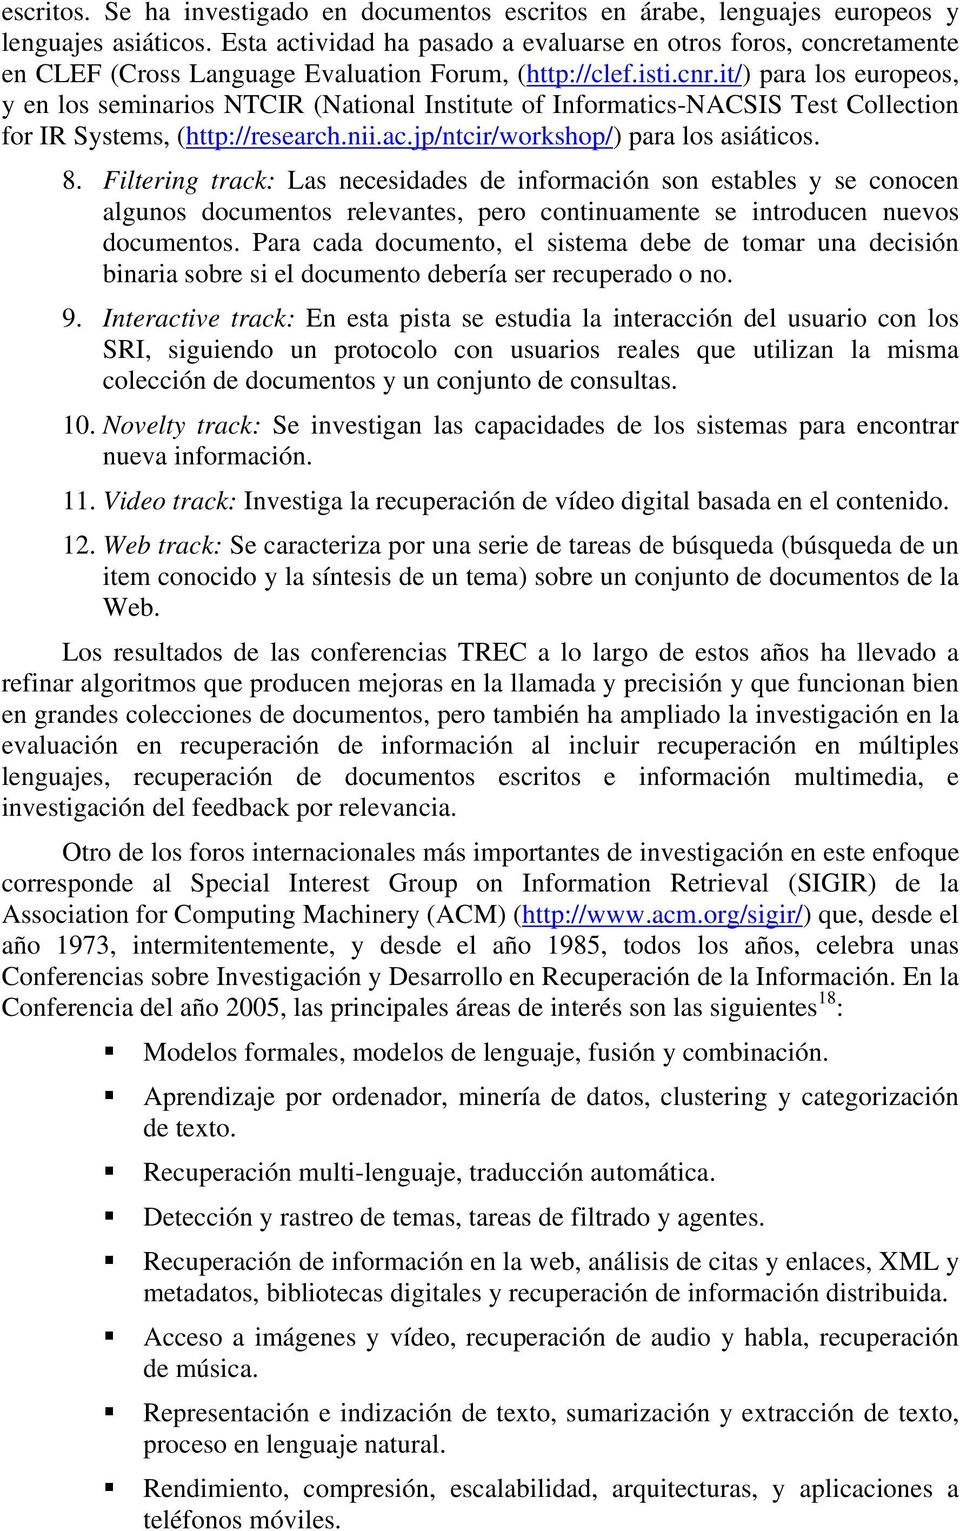 it/) para los europeos, y en los seminarios NTCIR (National Institute of Informatics-NACSIS Test Collection for IR Systems, (http://research.nii.ac.jp/ntcir/workshop/) para los asiáticos. 8.